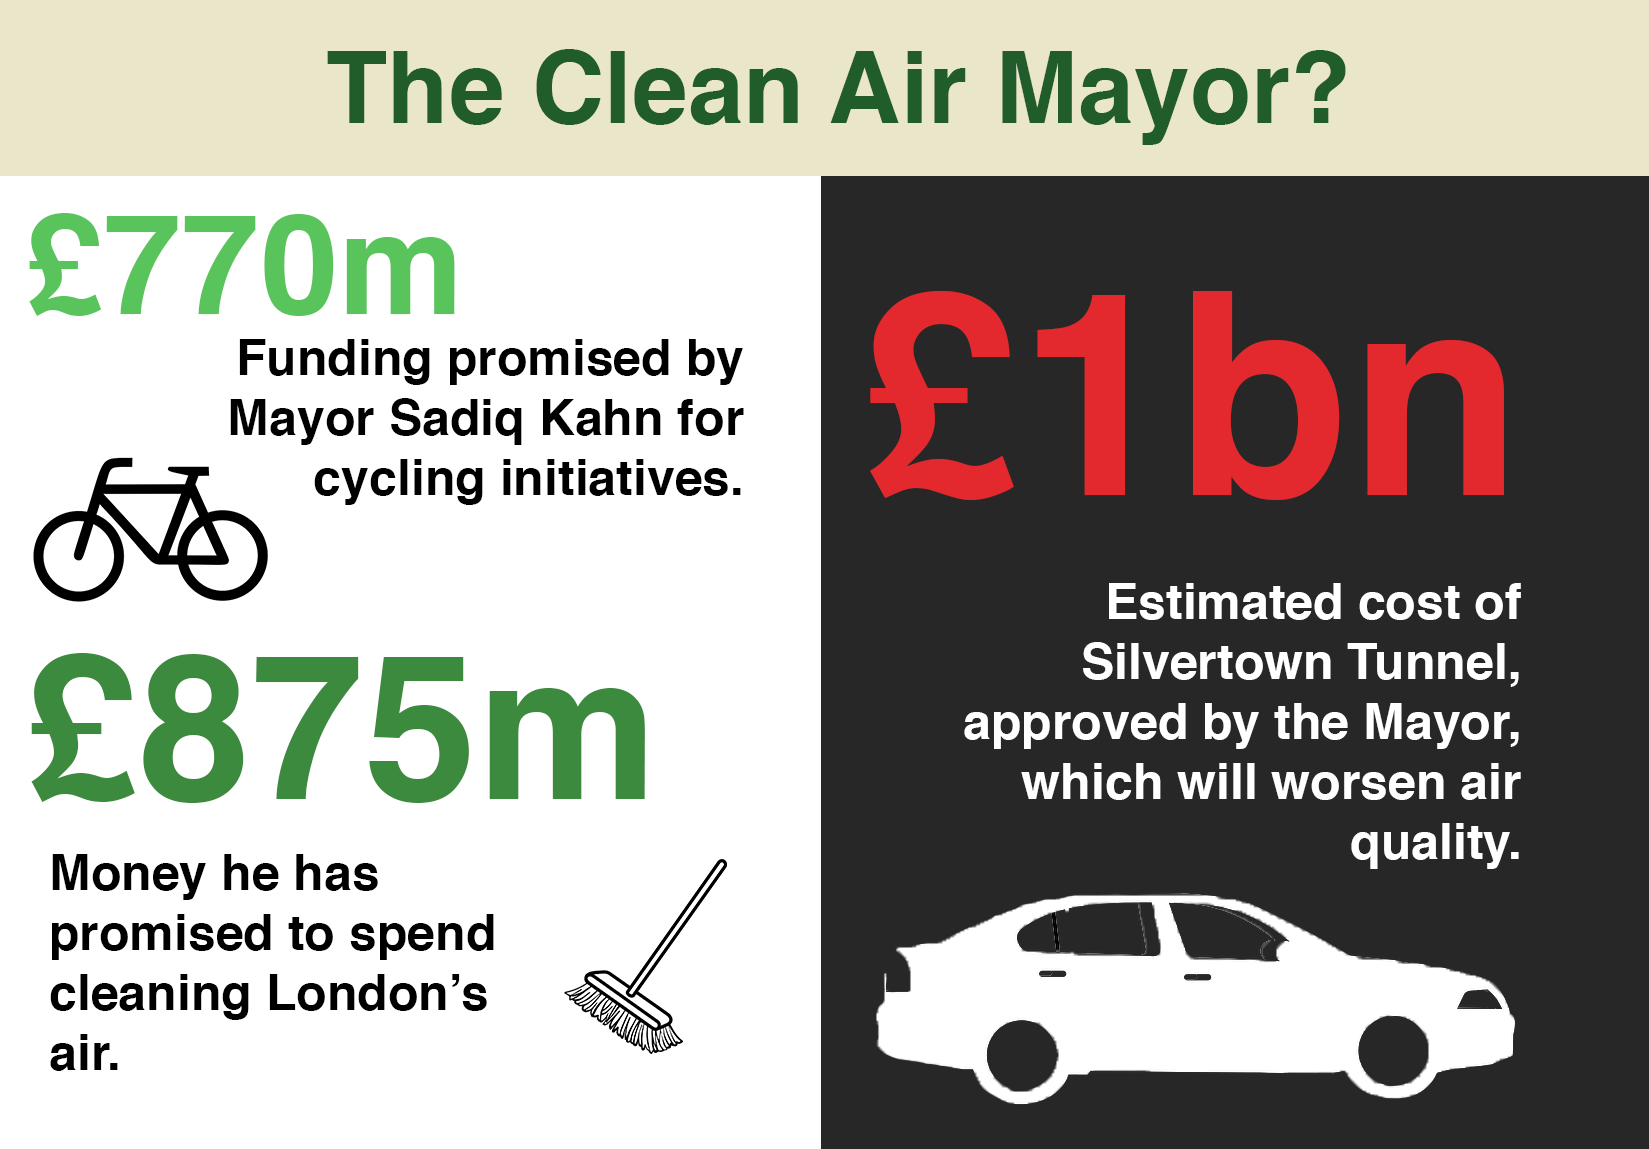 Spending by the Mayor of London Sadiq Kahn: £770m on cycling initiatives, £875m cleaning London's air, and £1bn on the heavily polluting Silvertown Tunnel